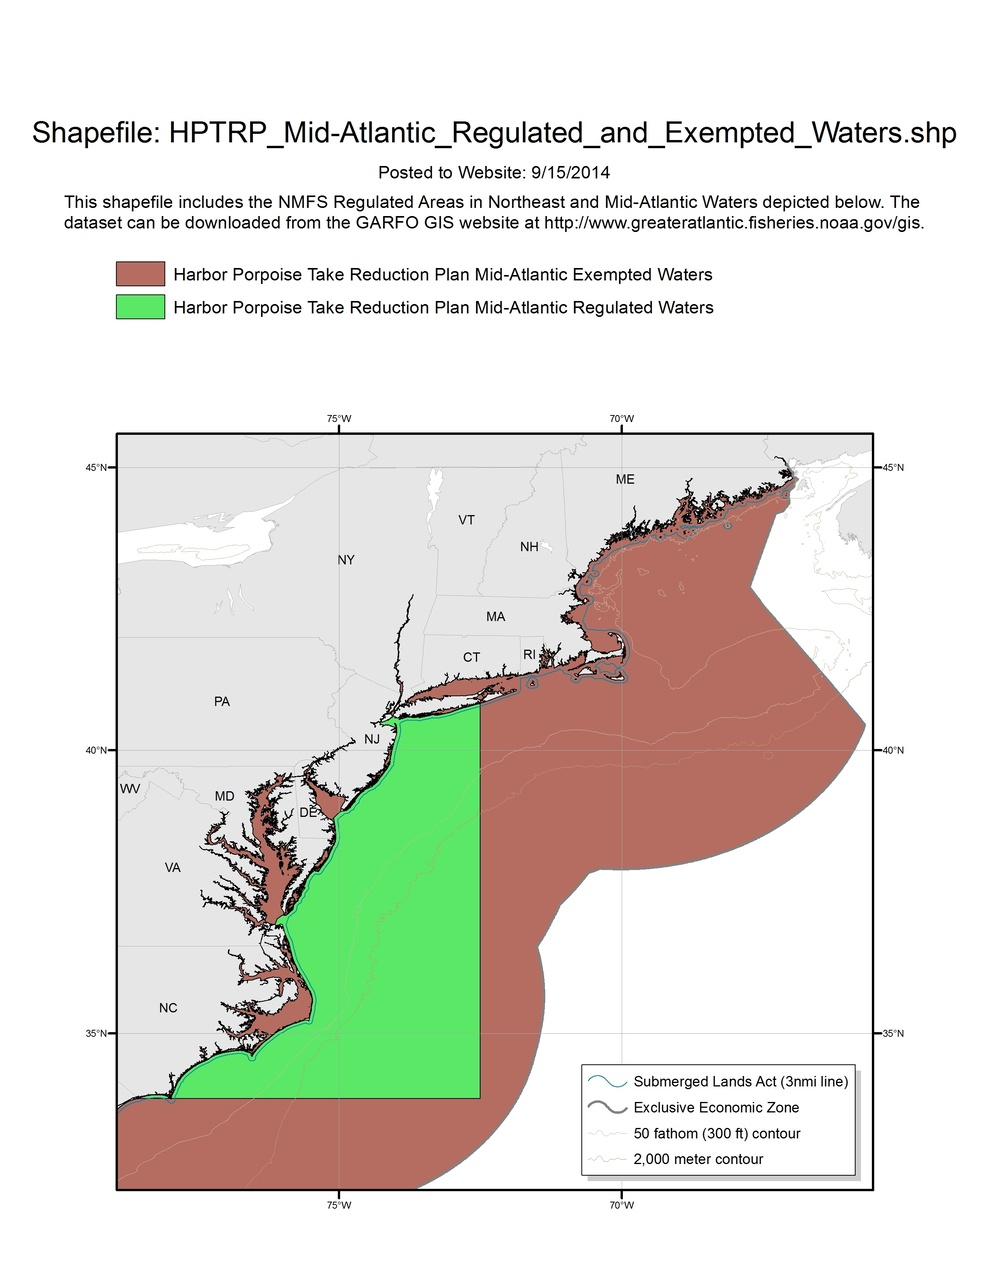 HPTRP_Mid-Atlantic_Regulated_and_Exempted_Waters_MAP.jpg